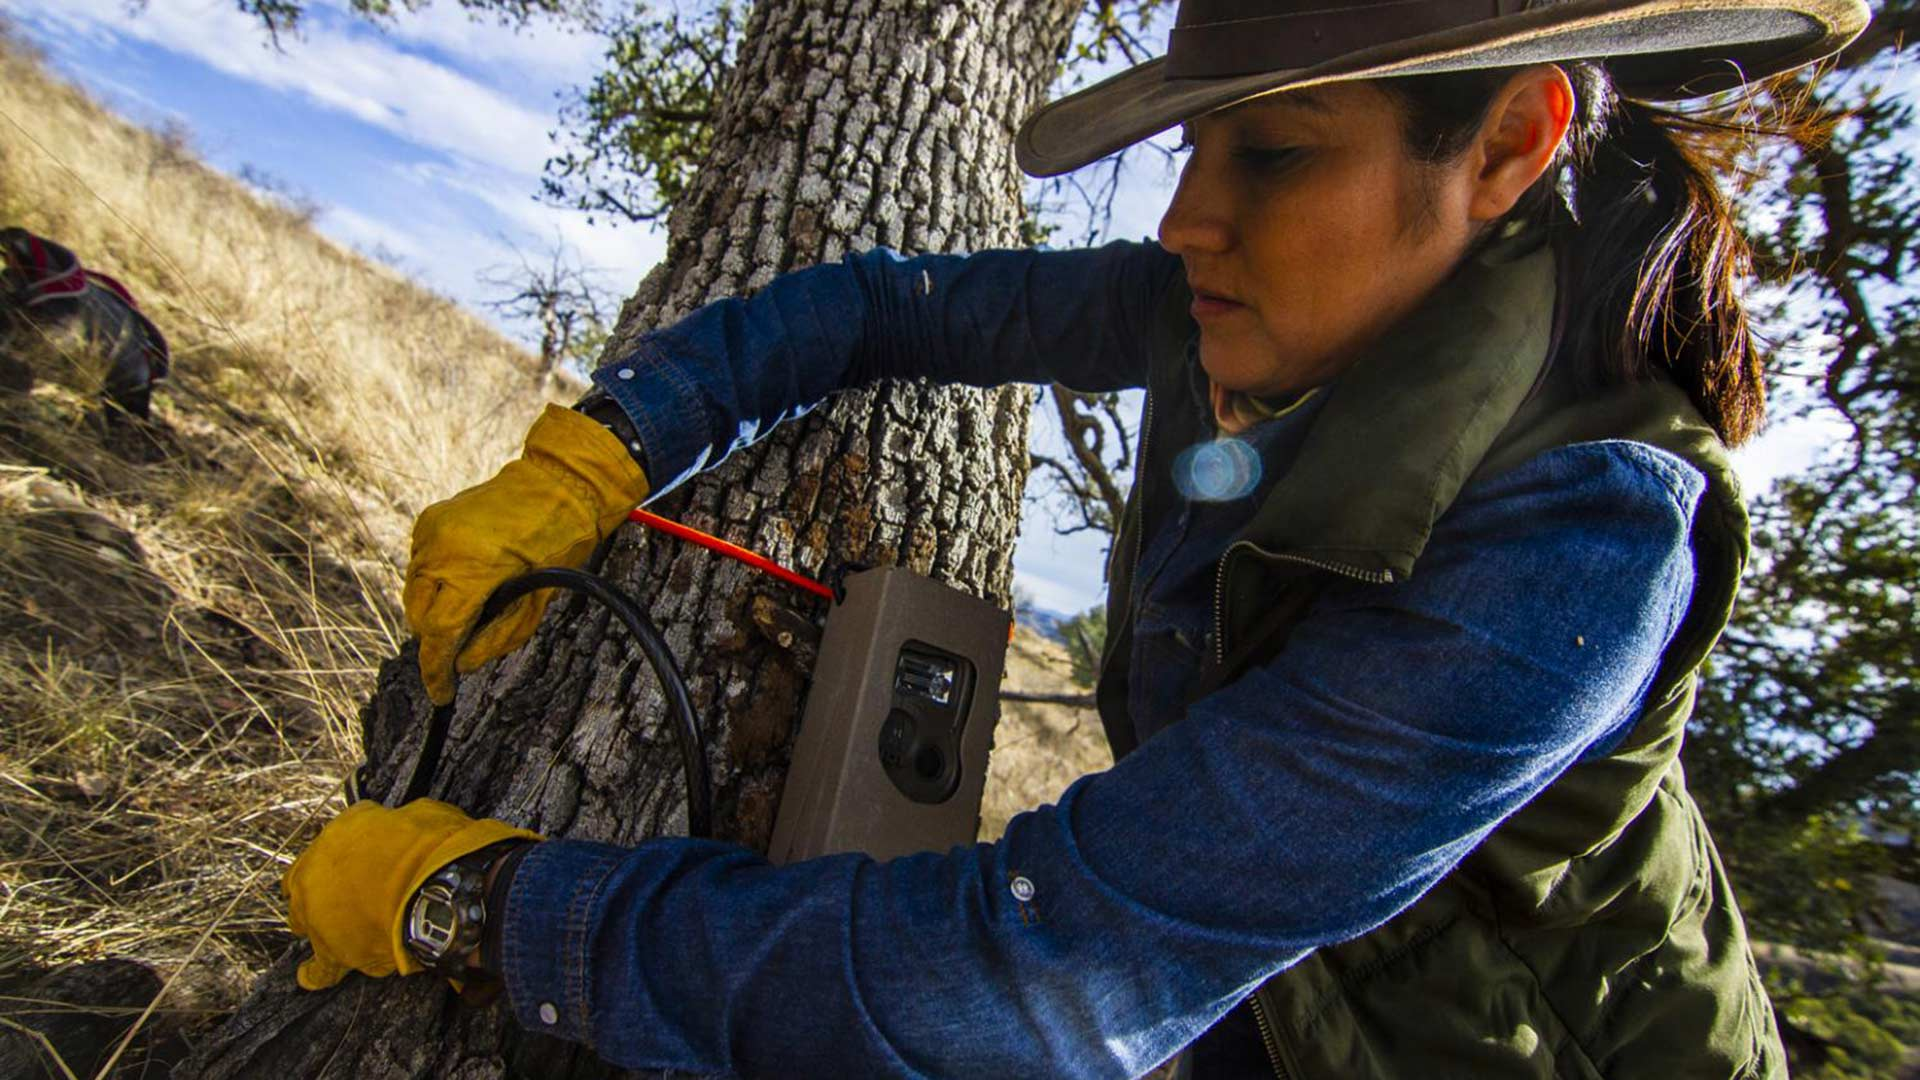 The Sonoran Ecology and Sustainable Development Commission's Shandira Romero finishes installing a game camera.